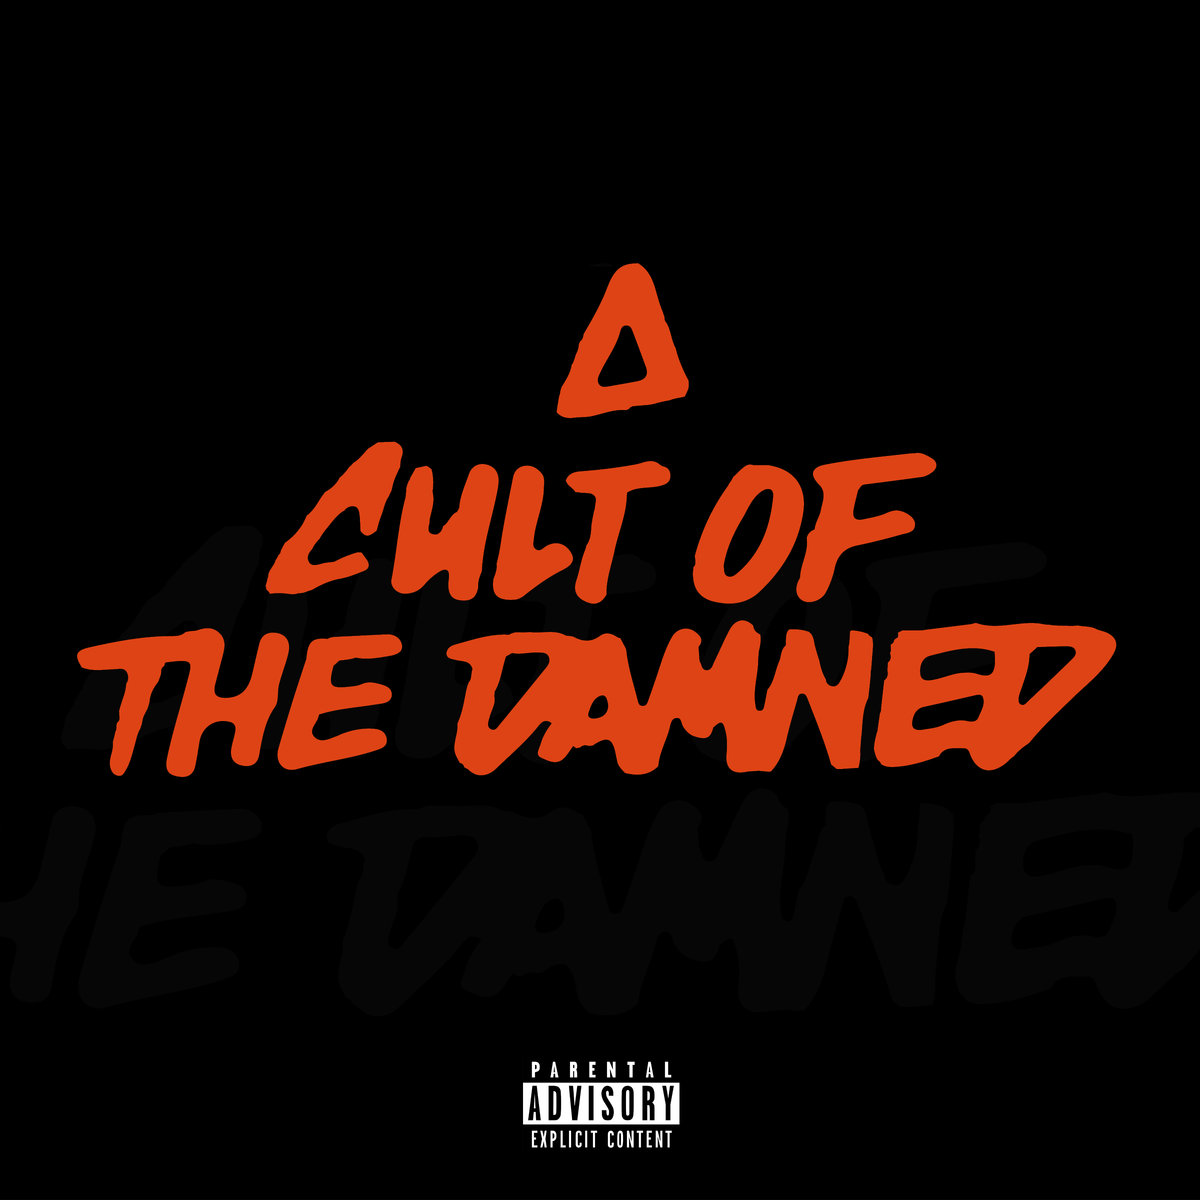 Cult_of_the_damned